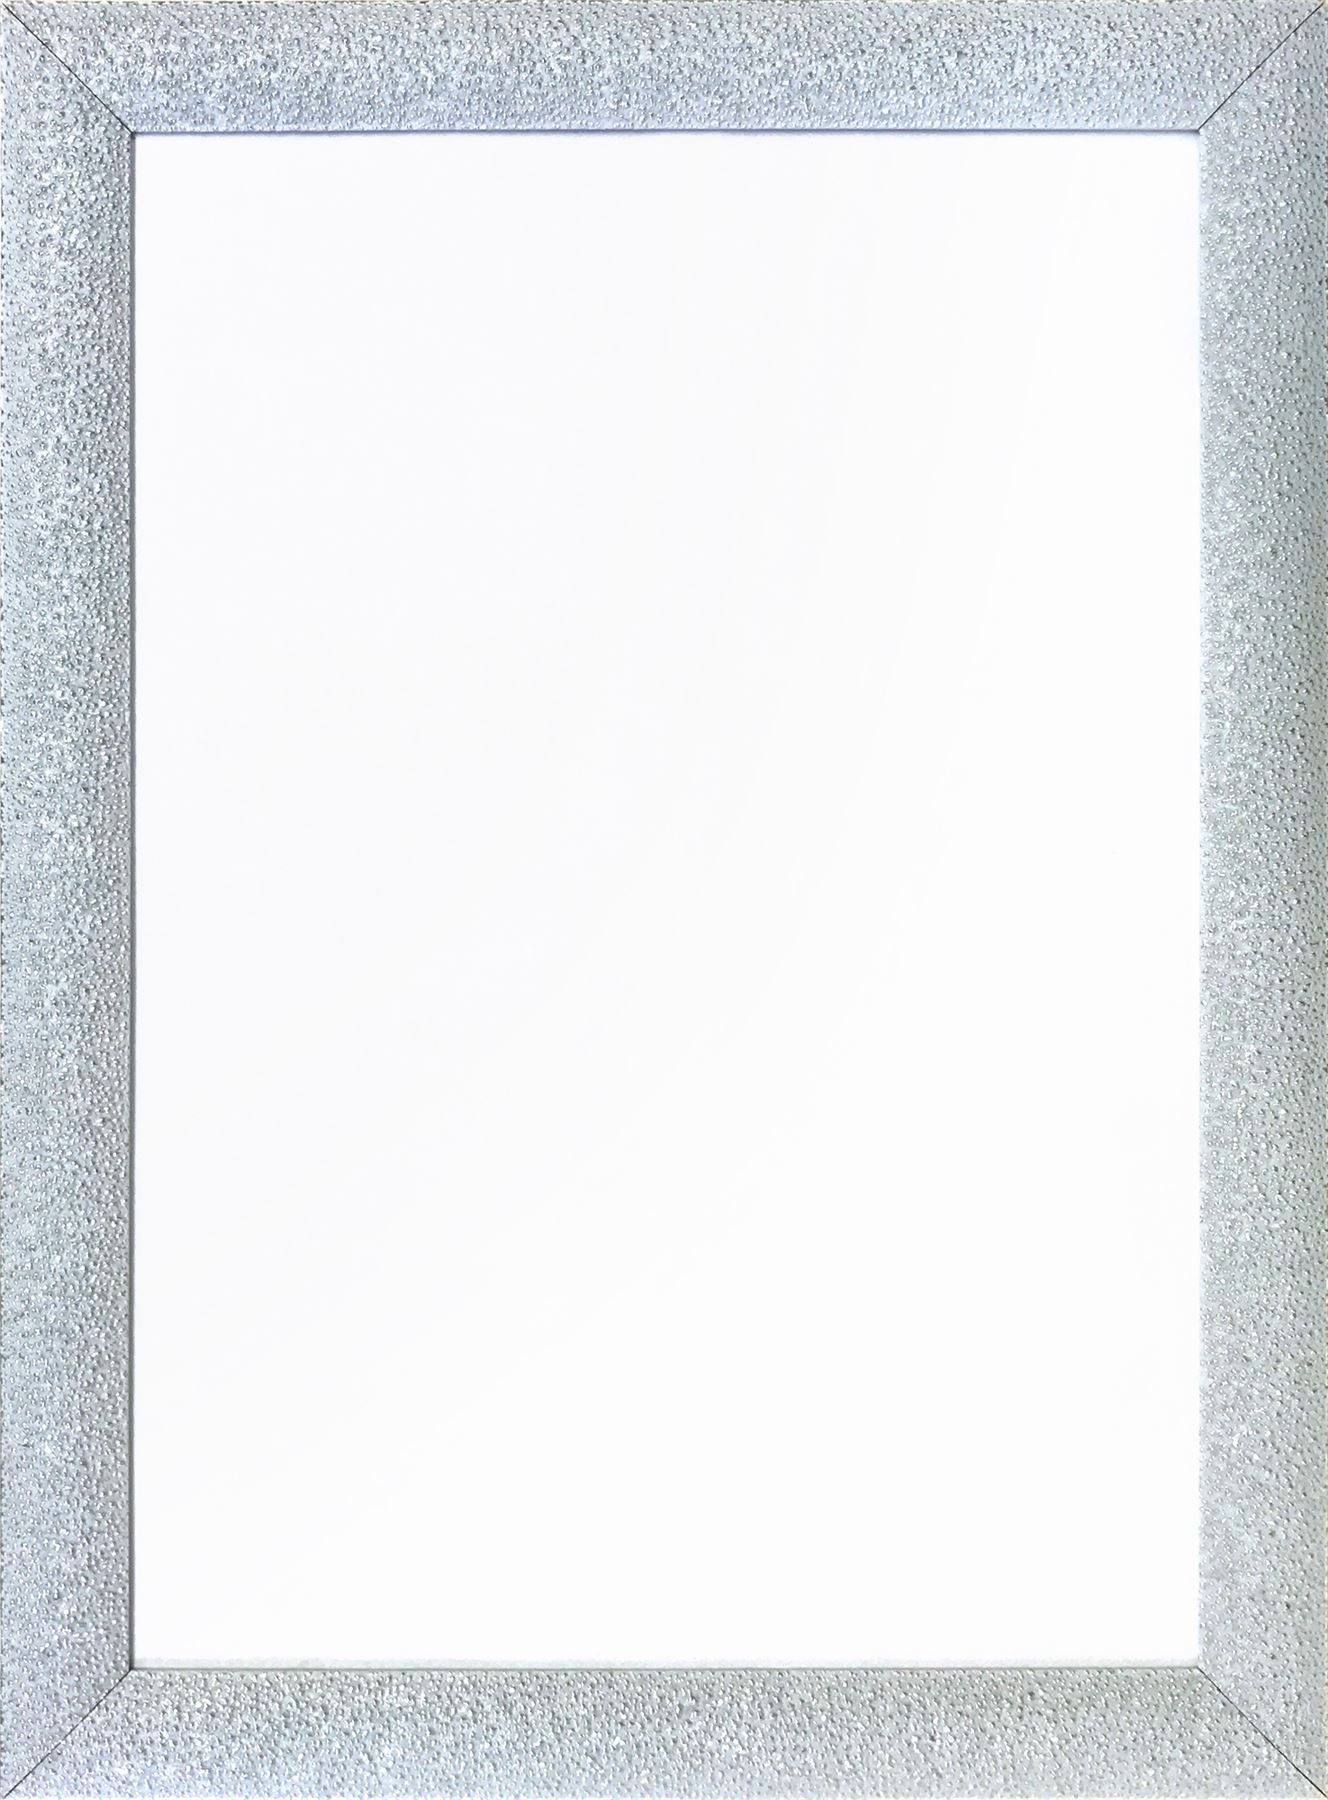 Dazzle Range Sparkle Glitter Effect Picture Photo Frame Poster Frame ...